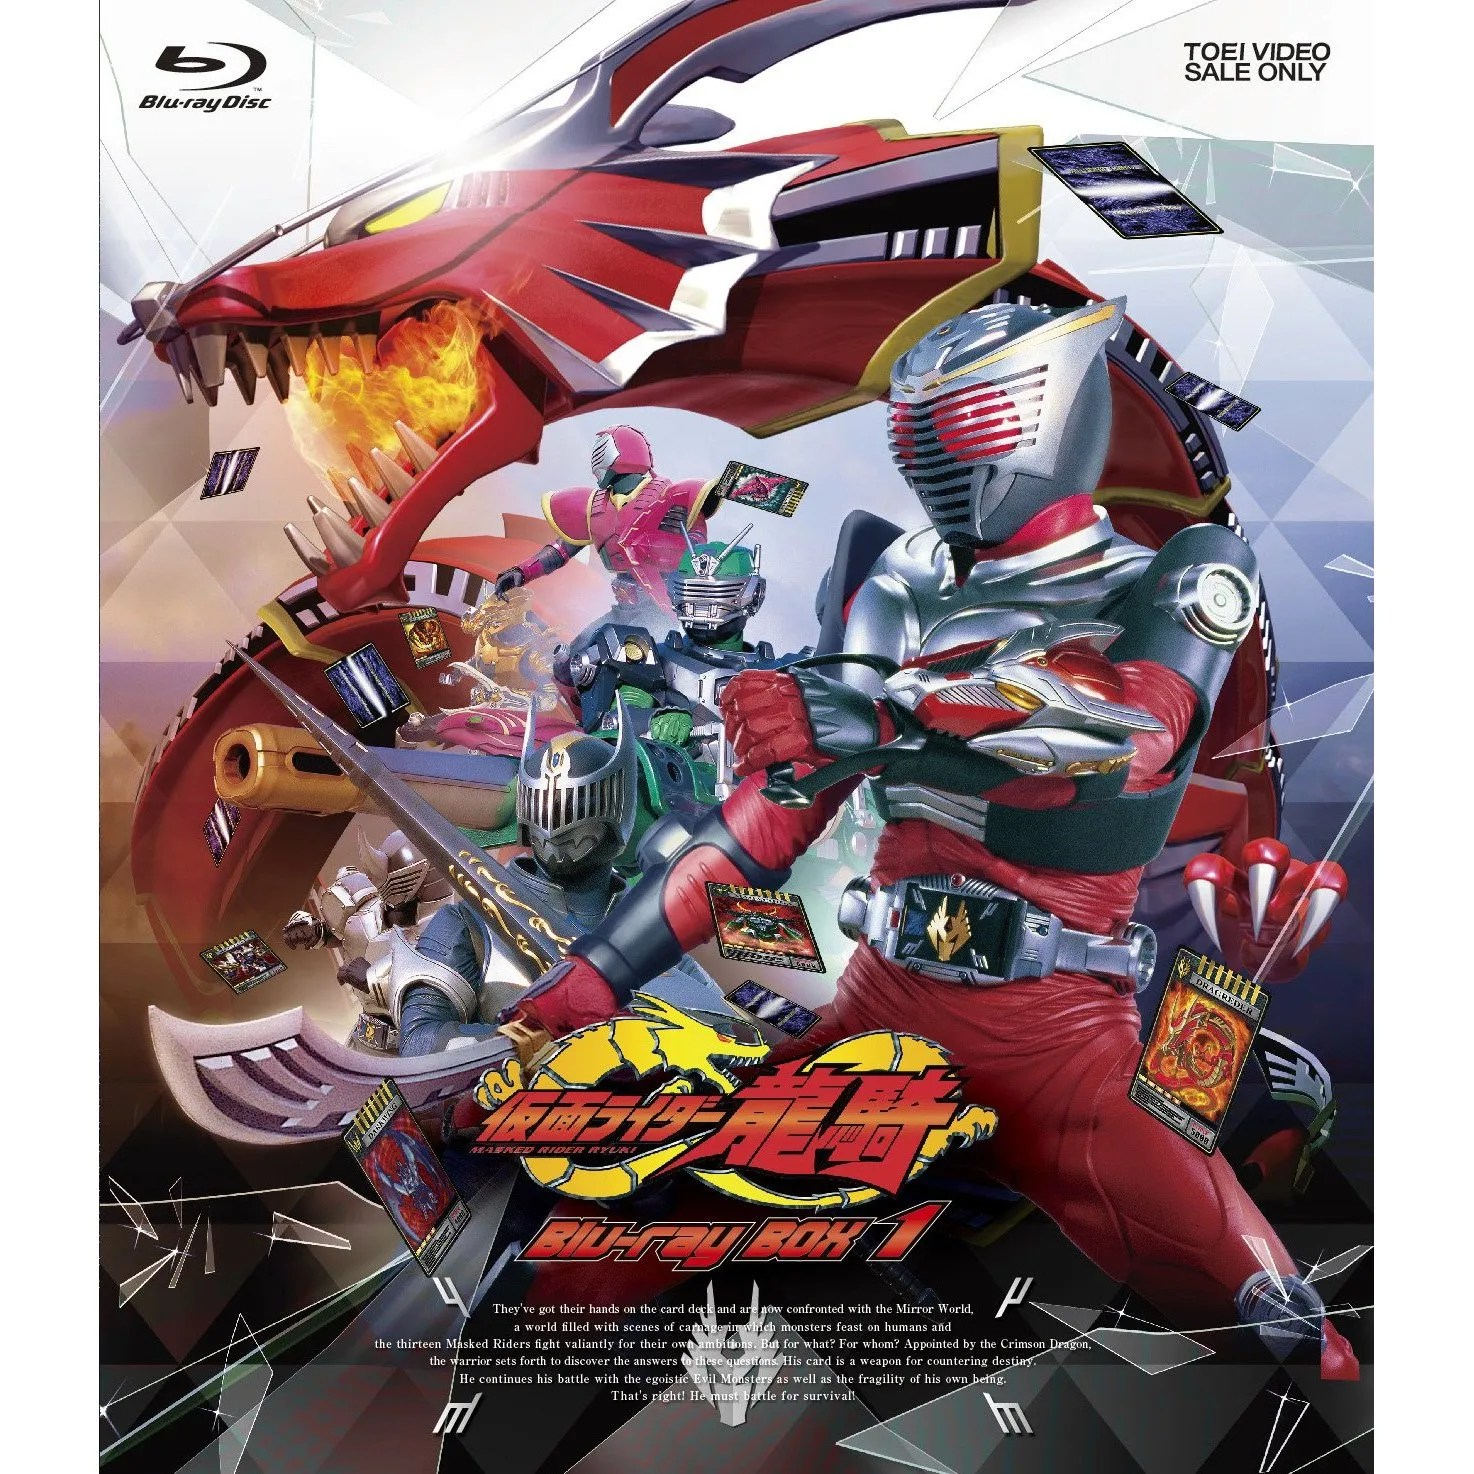 First Images of the Kamen Rider Ryuki Blu-Ray Set